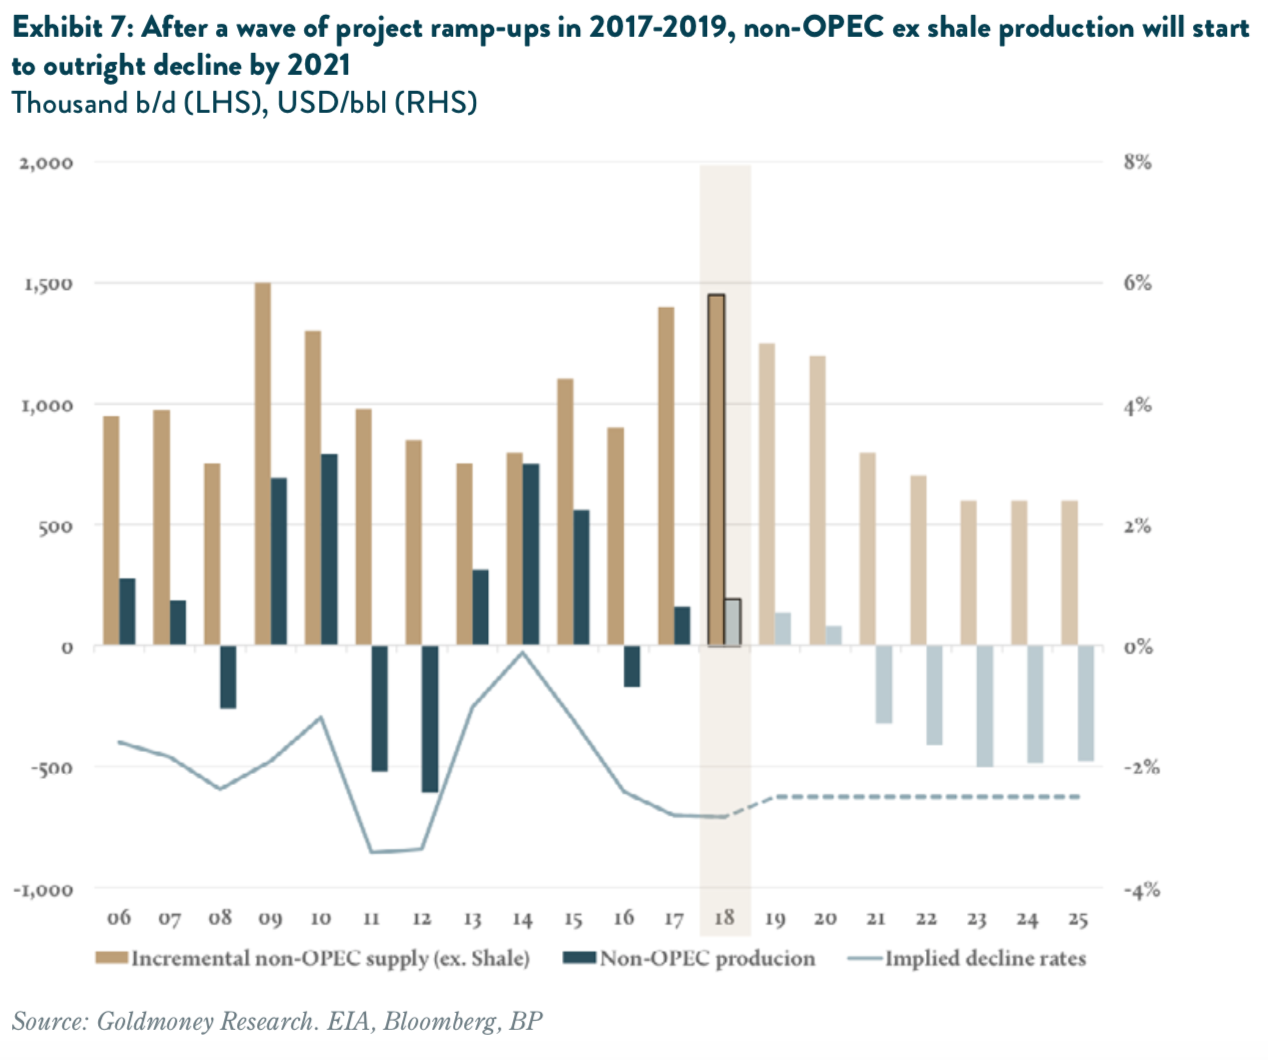 non-OPEC ex shale production will start to decline by 2021